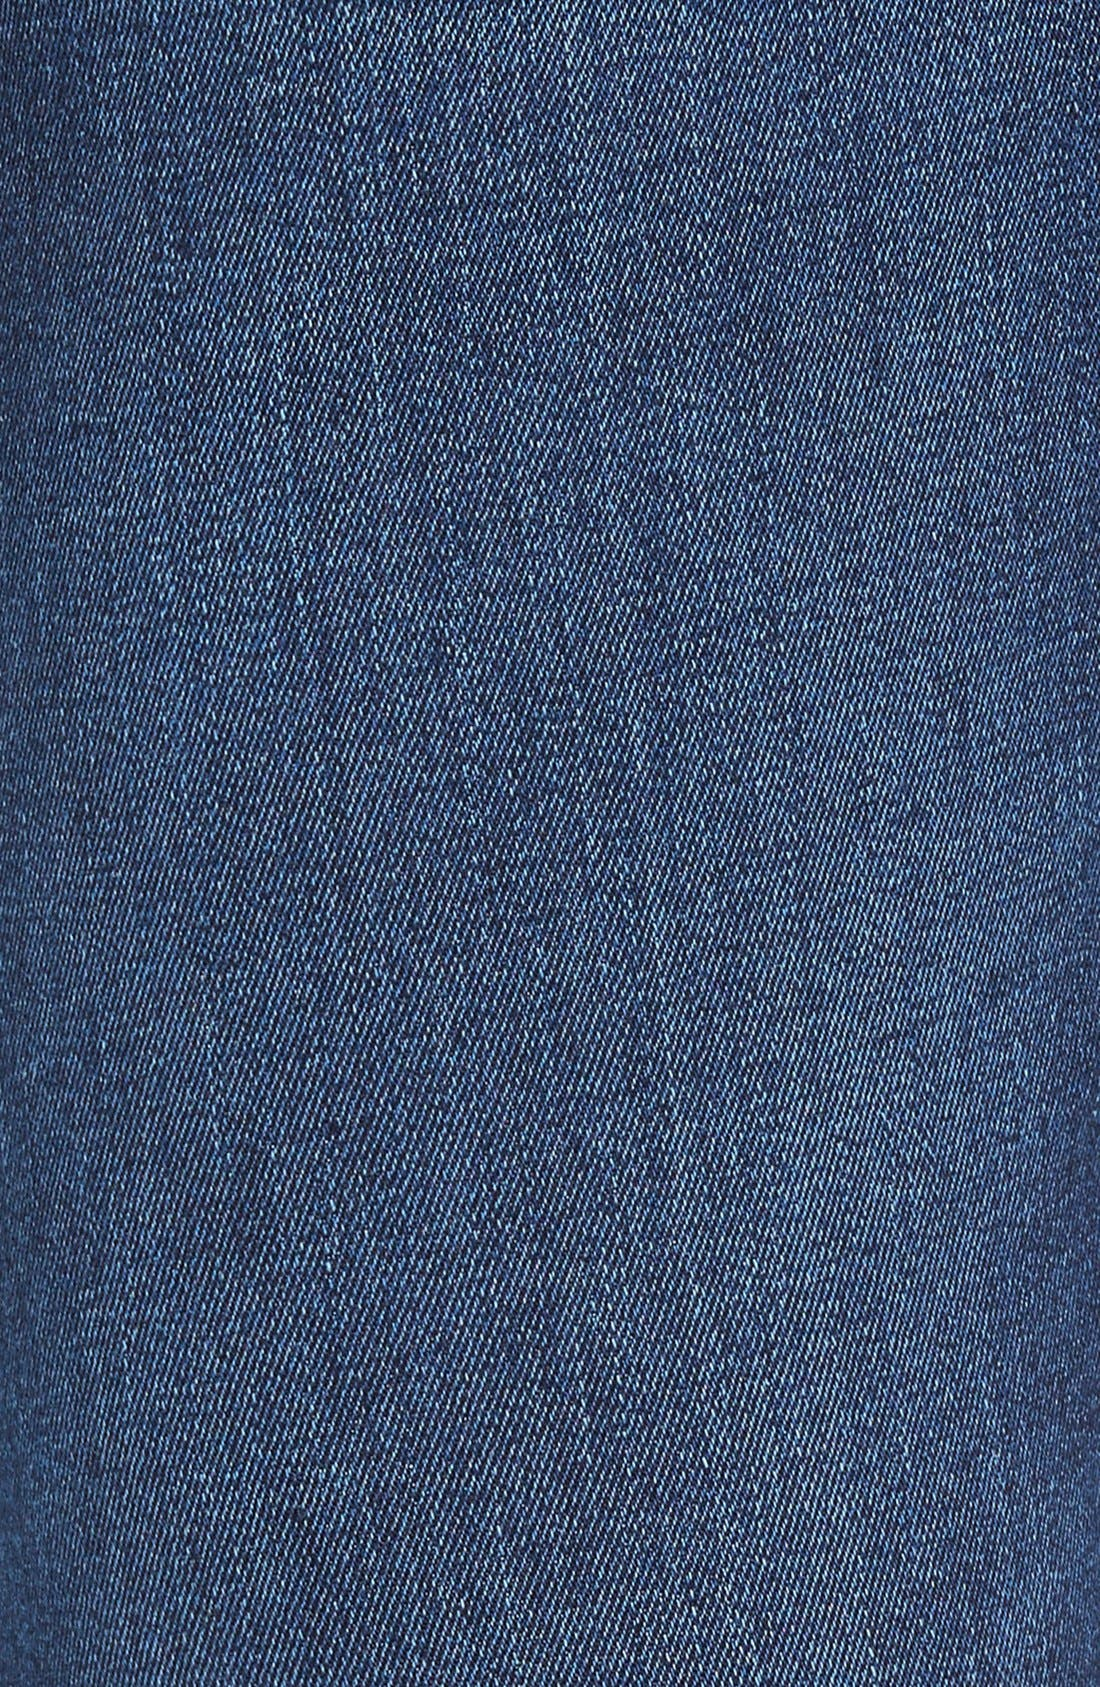 Russel Slim Straight Fit Jeans,                             Alternate thumbnail 5, color,                             405